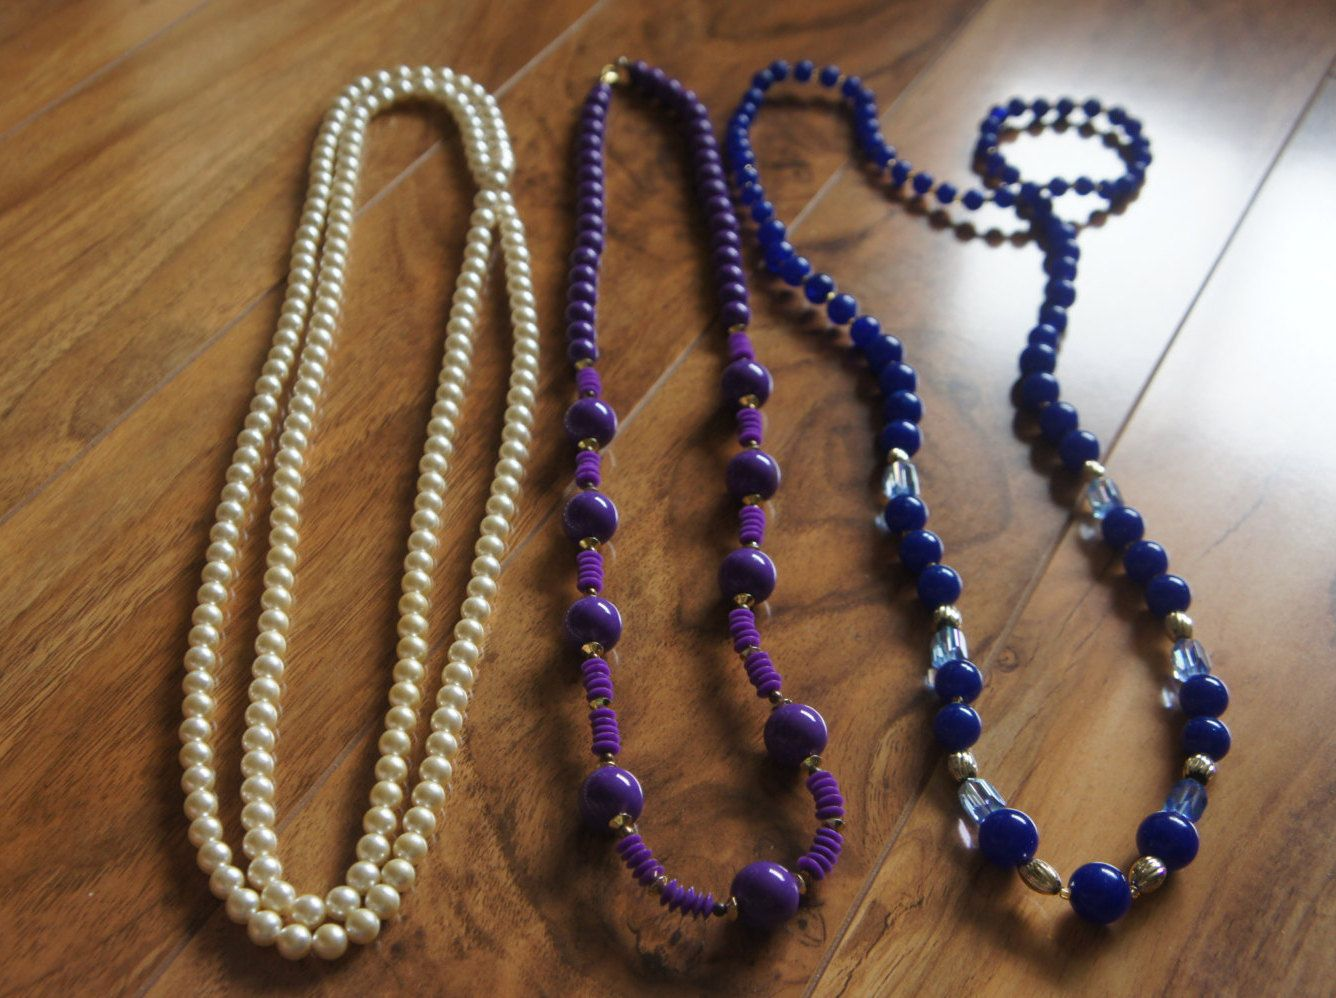 Estate Vintage Jewelry Necklace   Beaded  Beads  Blue Pearl White  Faux Pearls Violet Purple S-003 by VintageEstate86 on Etsy